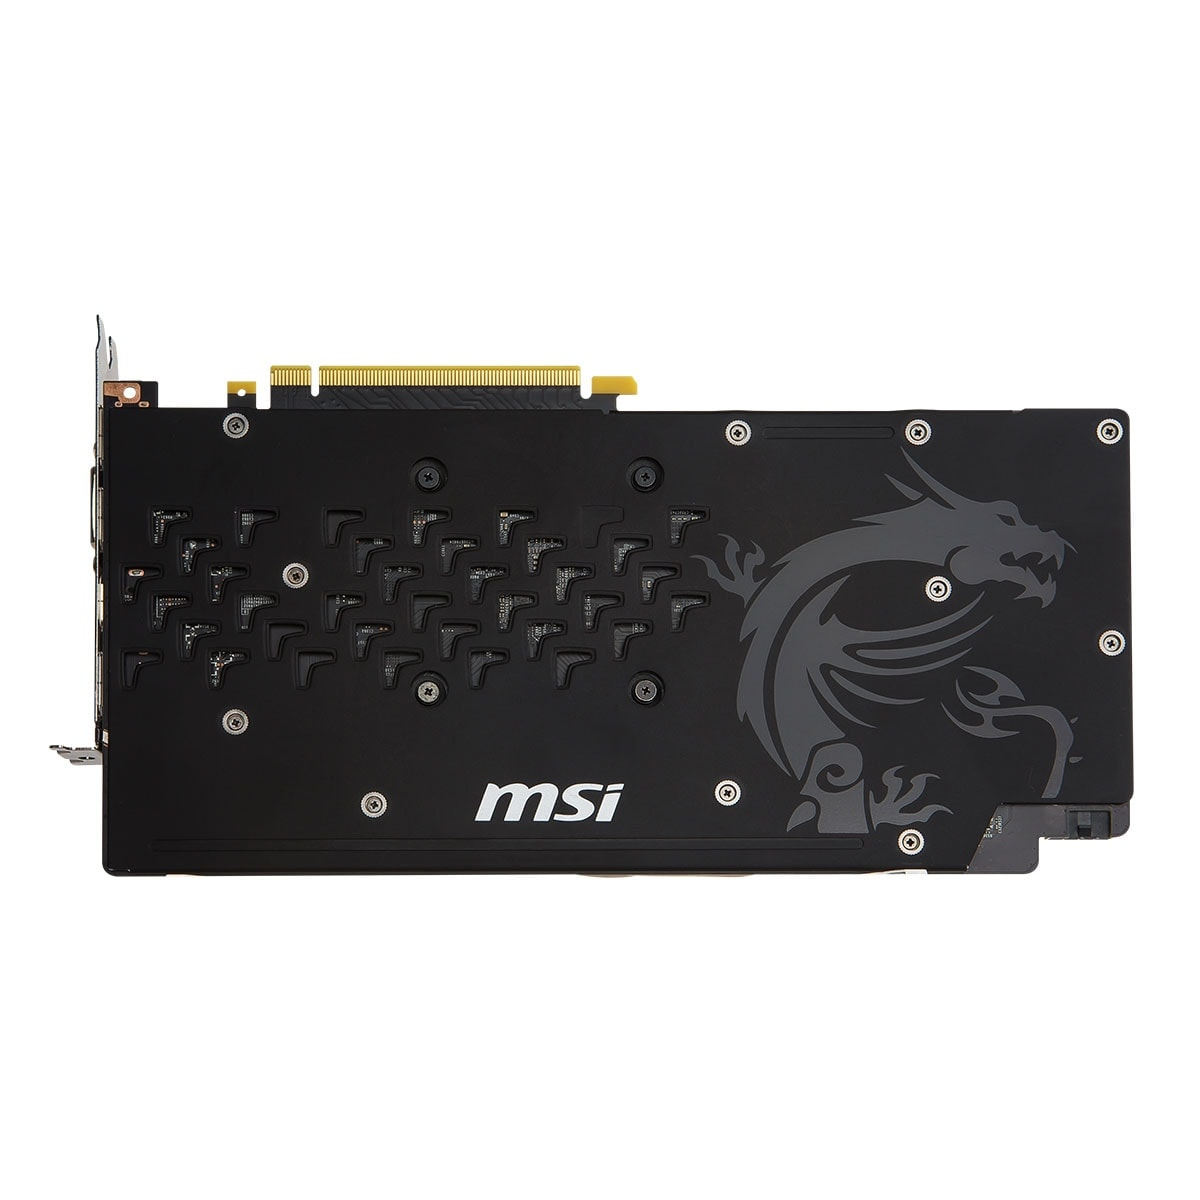 MSI GeForce GTX 1060 GAMING X 6G  (GeForce GTX 1060 GAMING X 6G ) - Achat / Vente Carte Graphique sur Cybertek.fr - 4